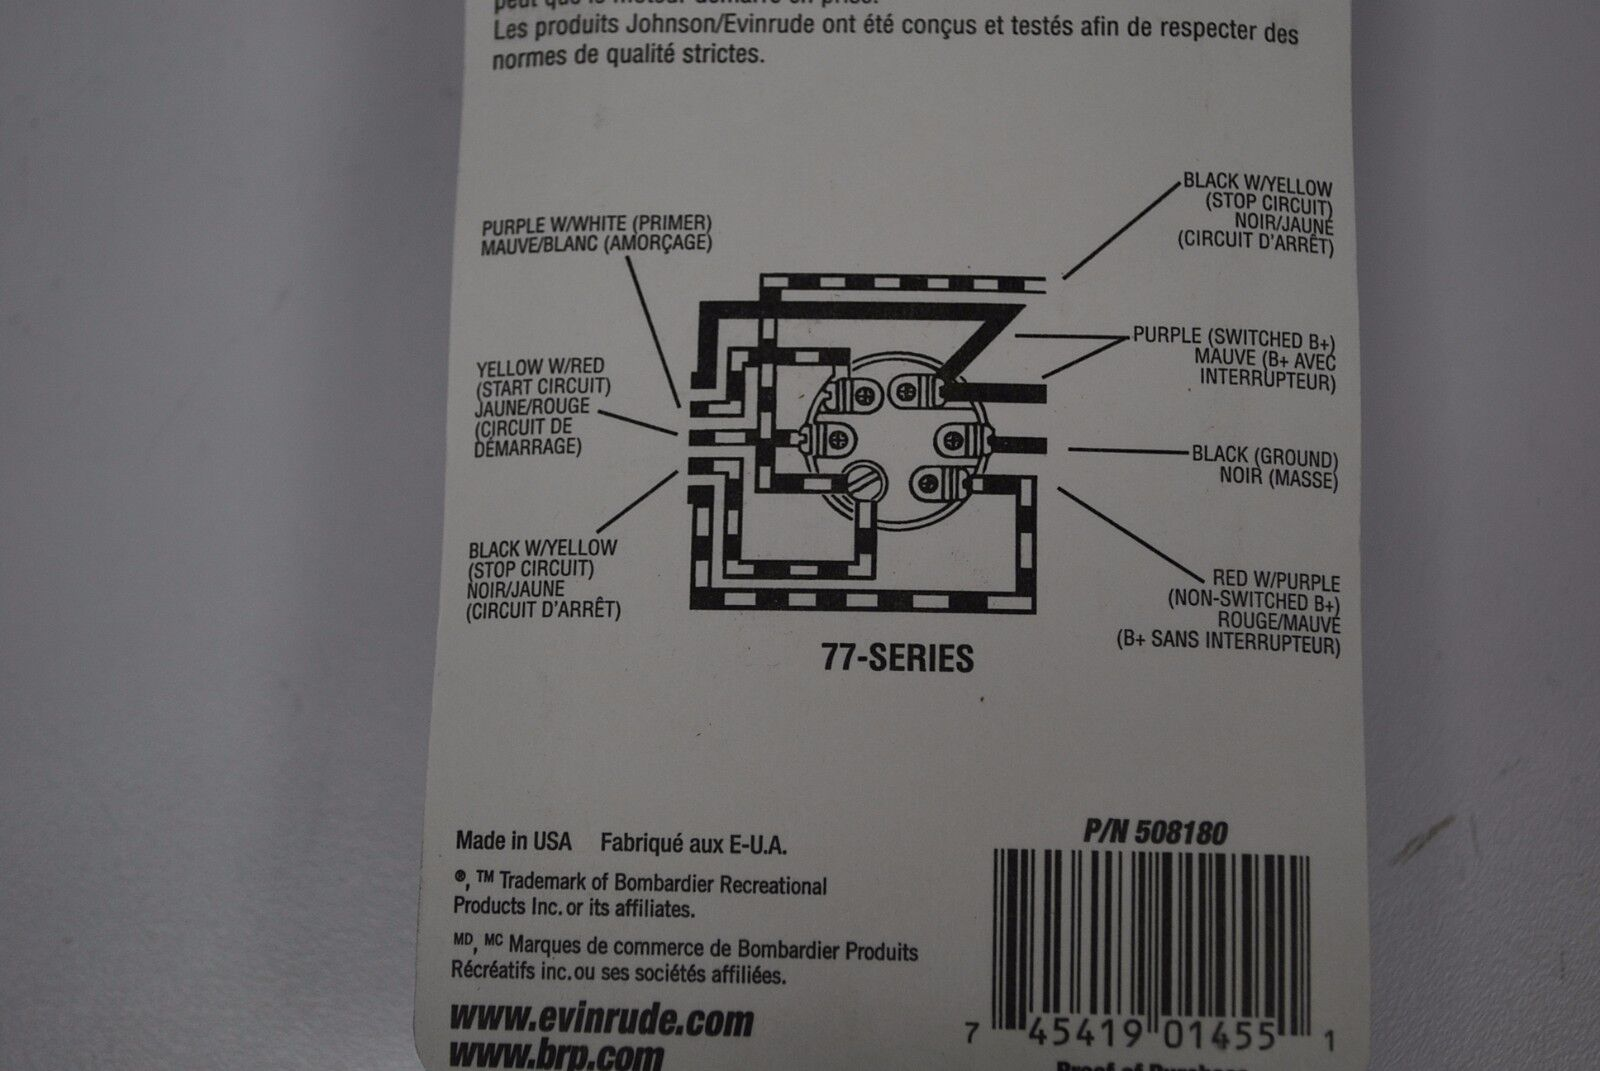 Wiring Diagram Johnson 508180 Basic Outboard Boat Diagrams Omc 77 Series Ignition Switch Ebay Rh Com Motor Color